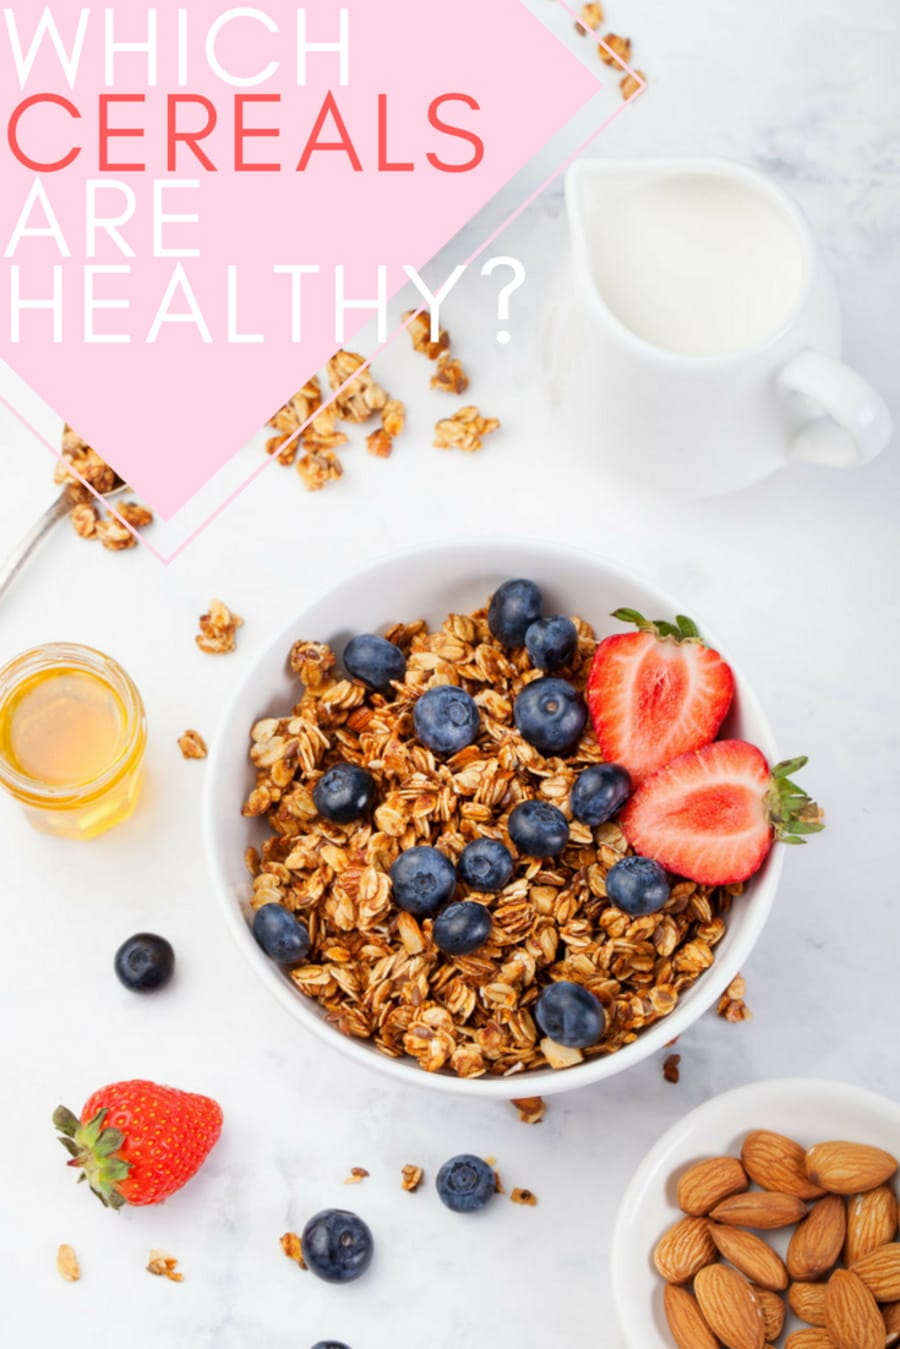 Discussion on this topic: Best Cereals For A Healthy Morning, best-cereals-for-a-healthy-morning/